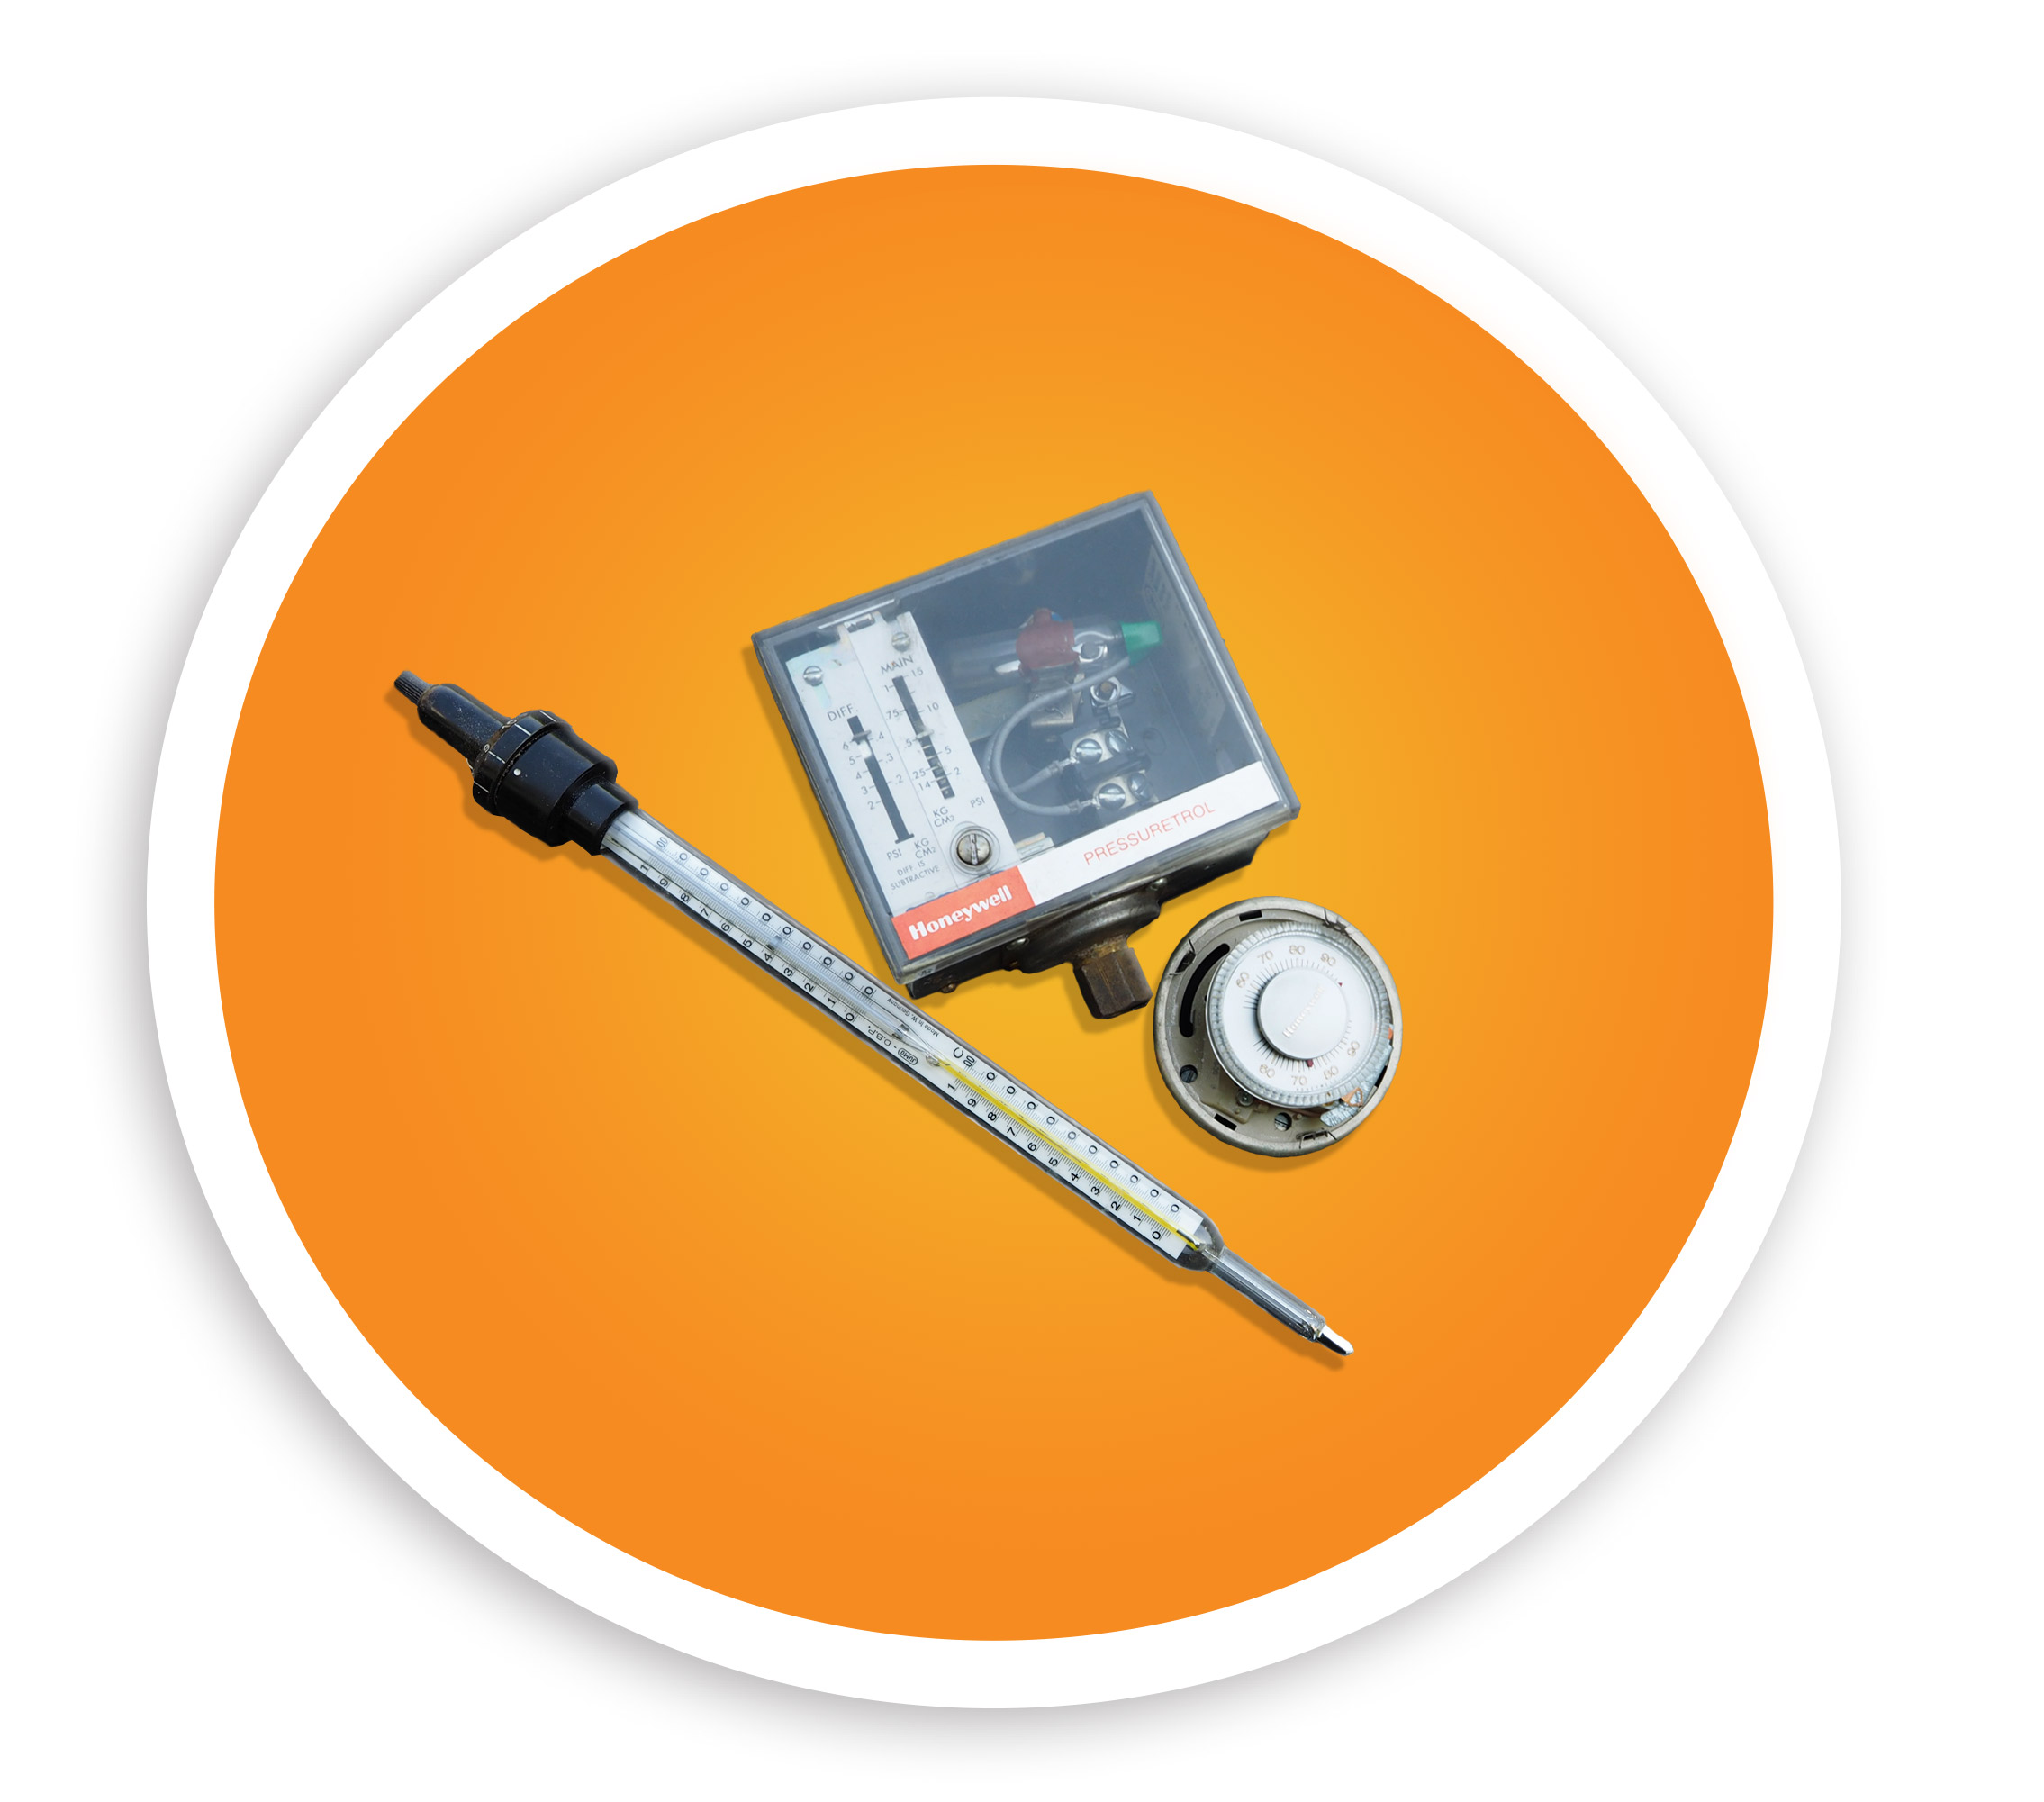 Picture of a thermometer, thermostat, and mercury switch. NLR recycles mercury containing devices.